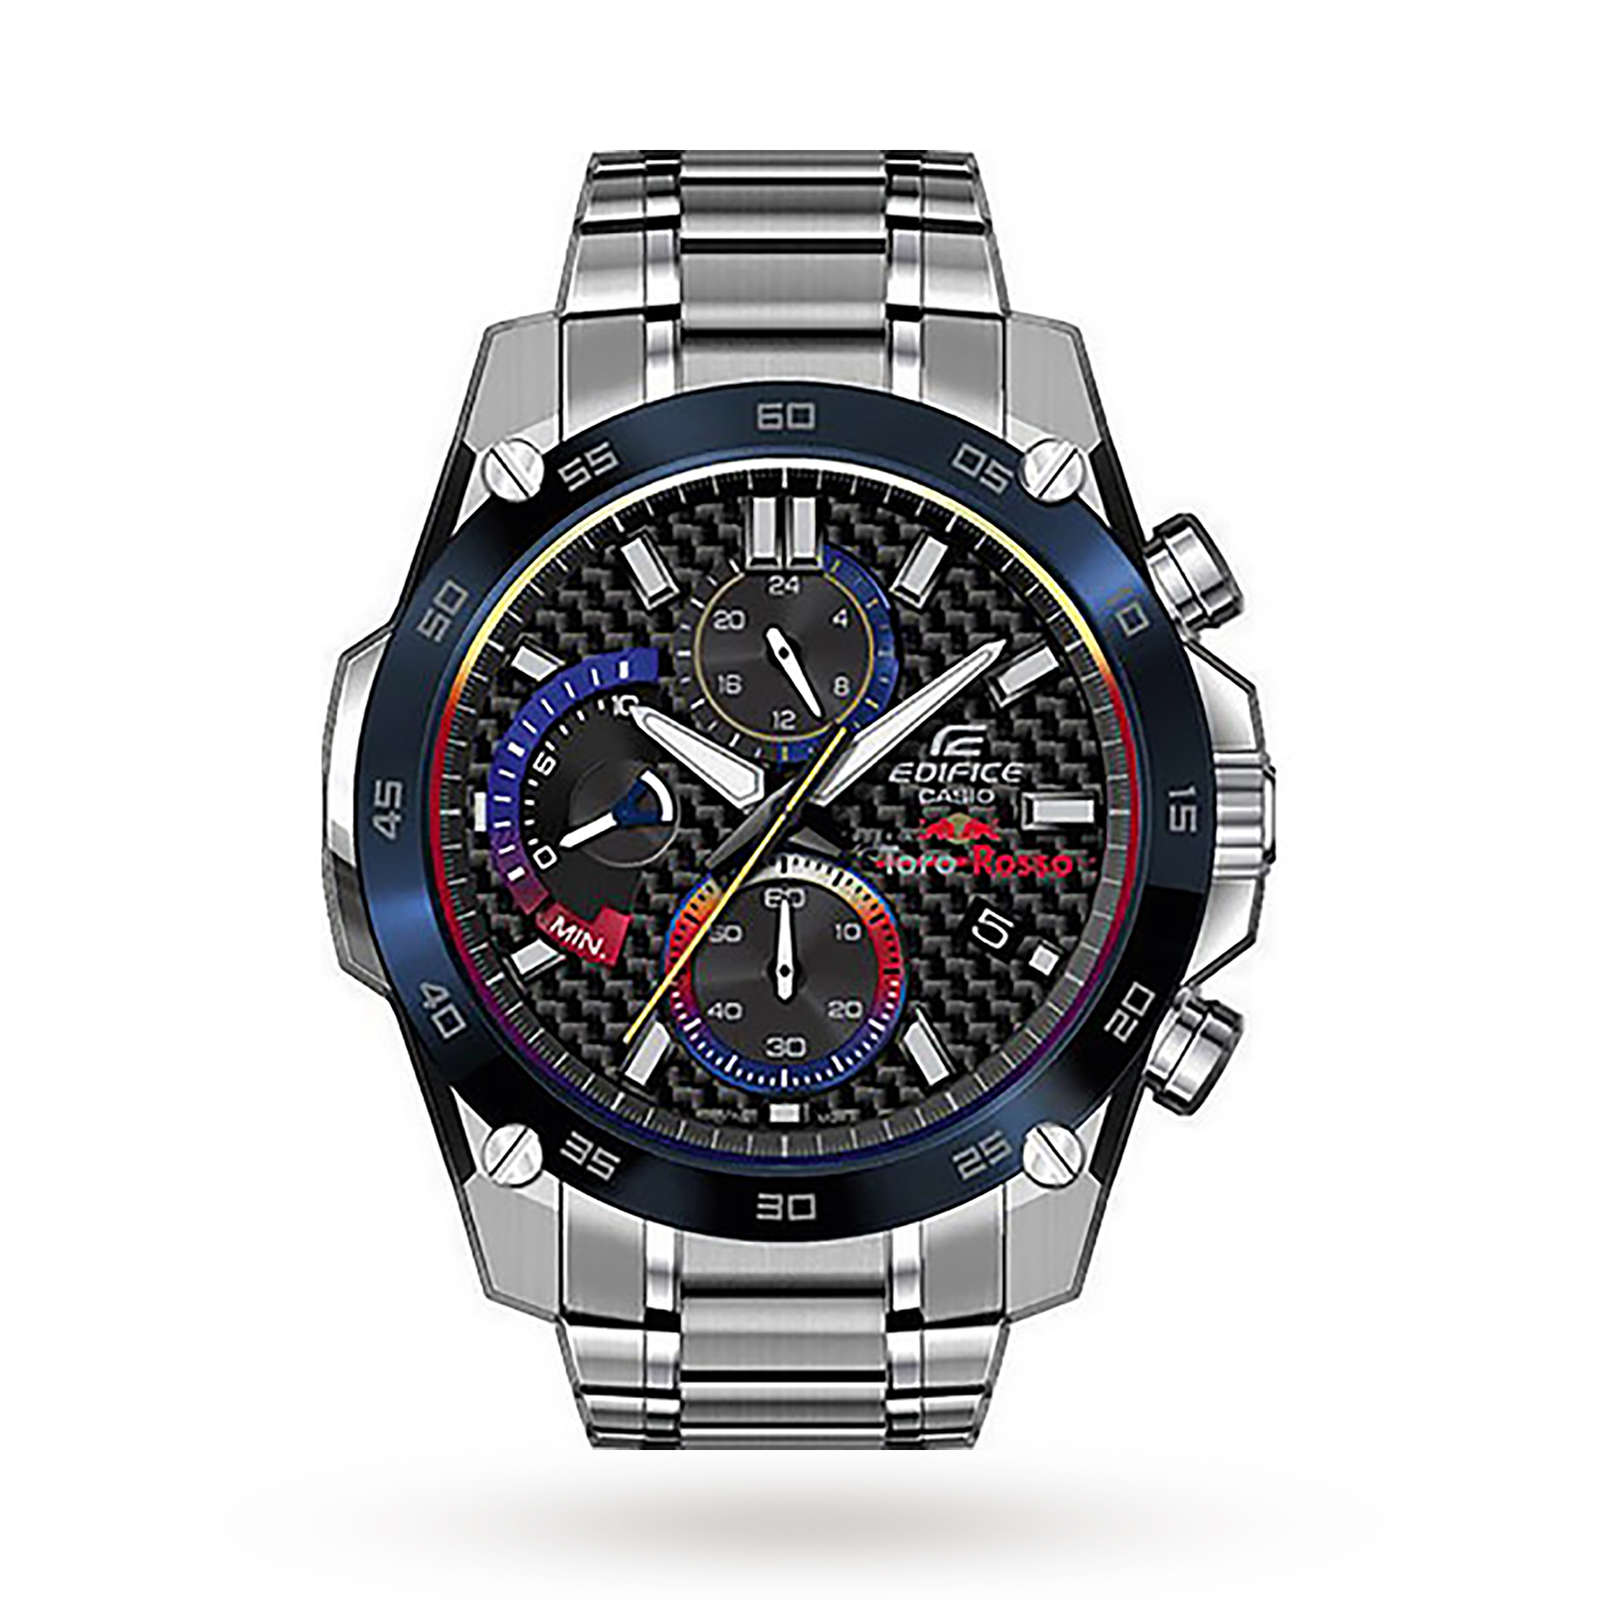 Casio Edifice Toro Rosso Special Edition Chronograph Watch